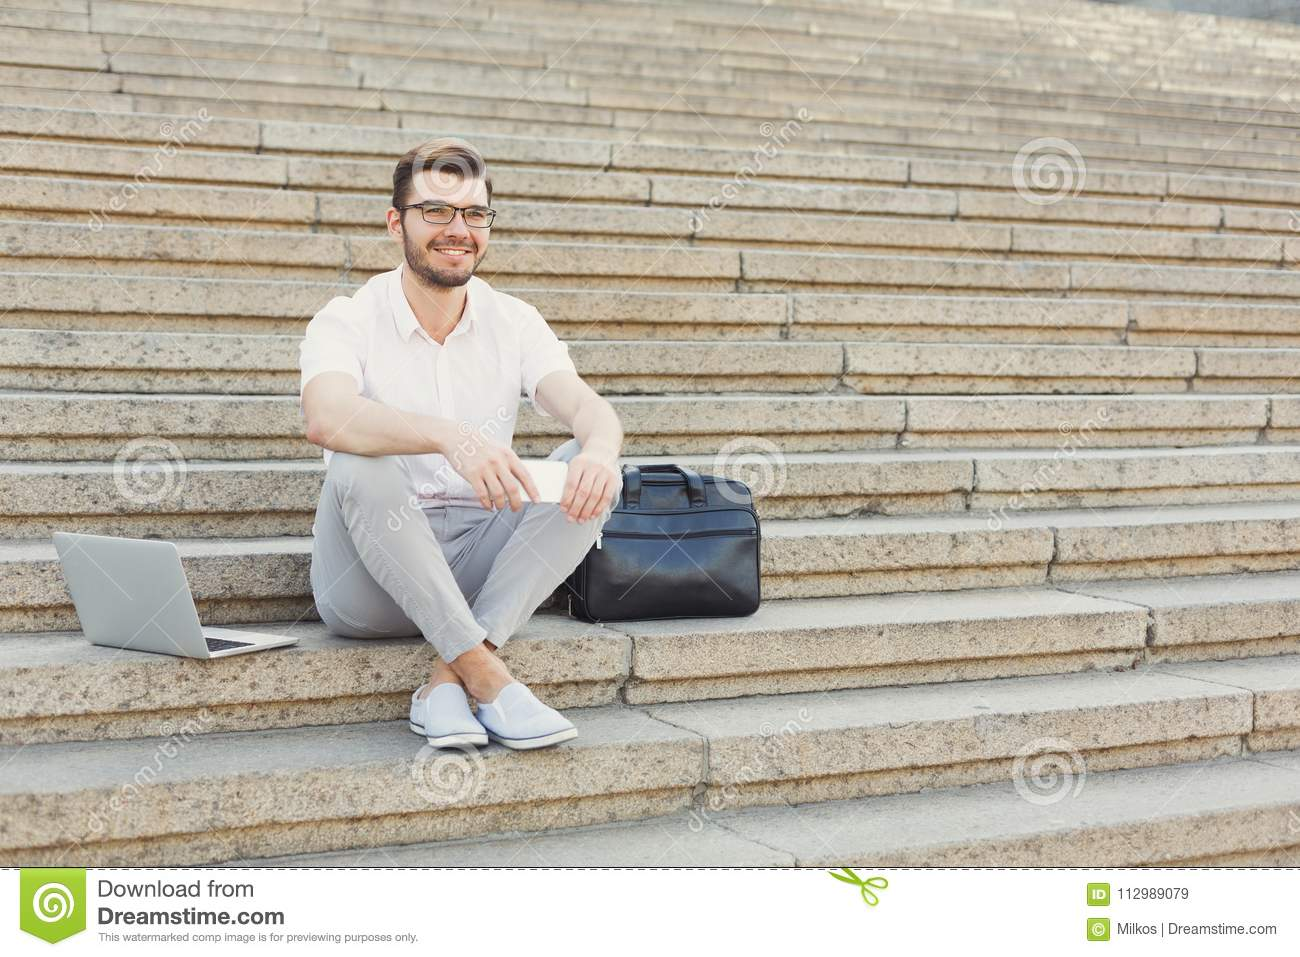 Cheerful young businessman using phone and laptop on stairs